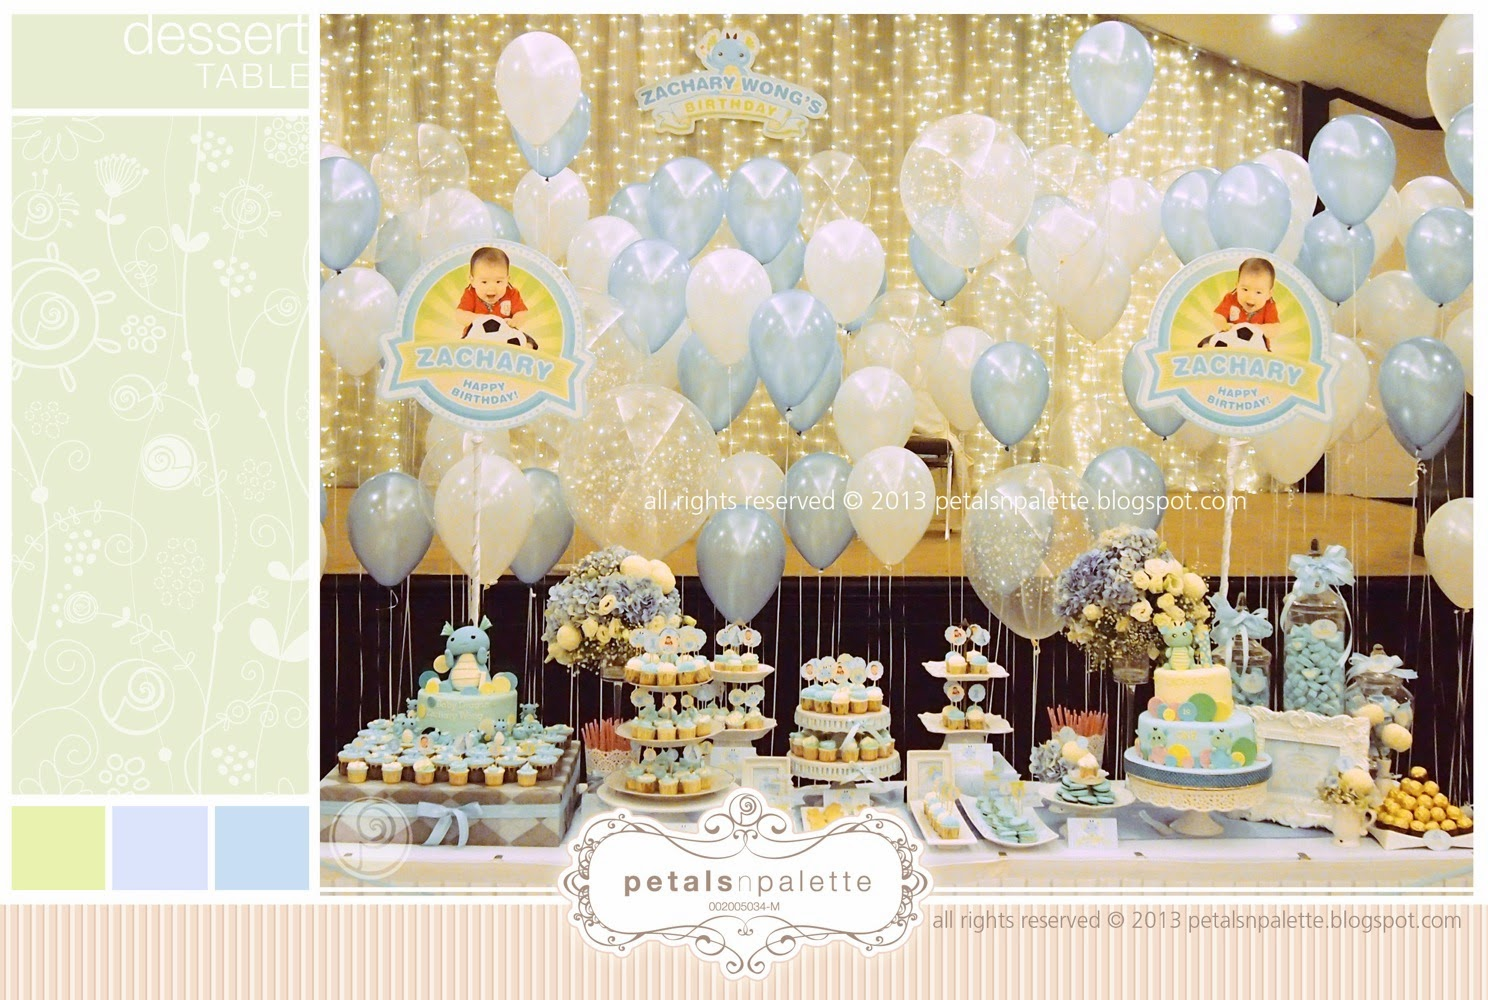 Dessert Table Birthday Party Wedding Decoration Malaysia